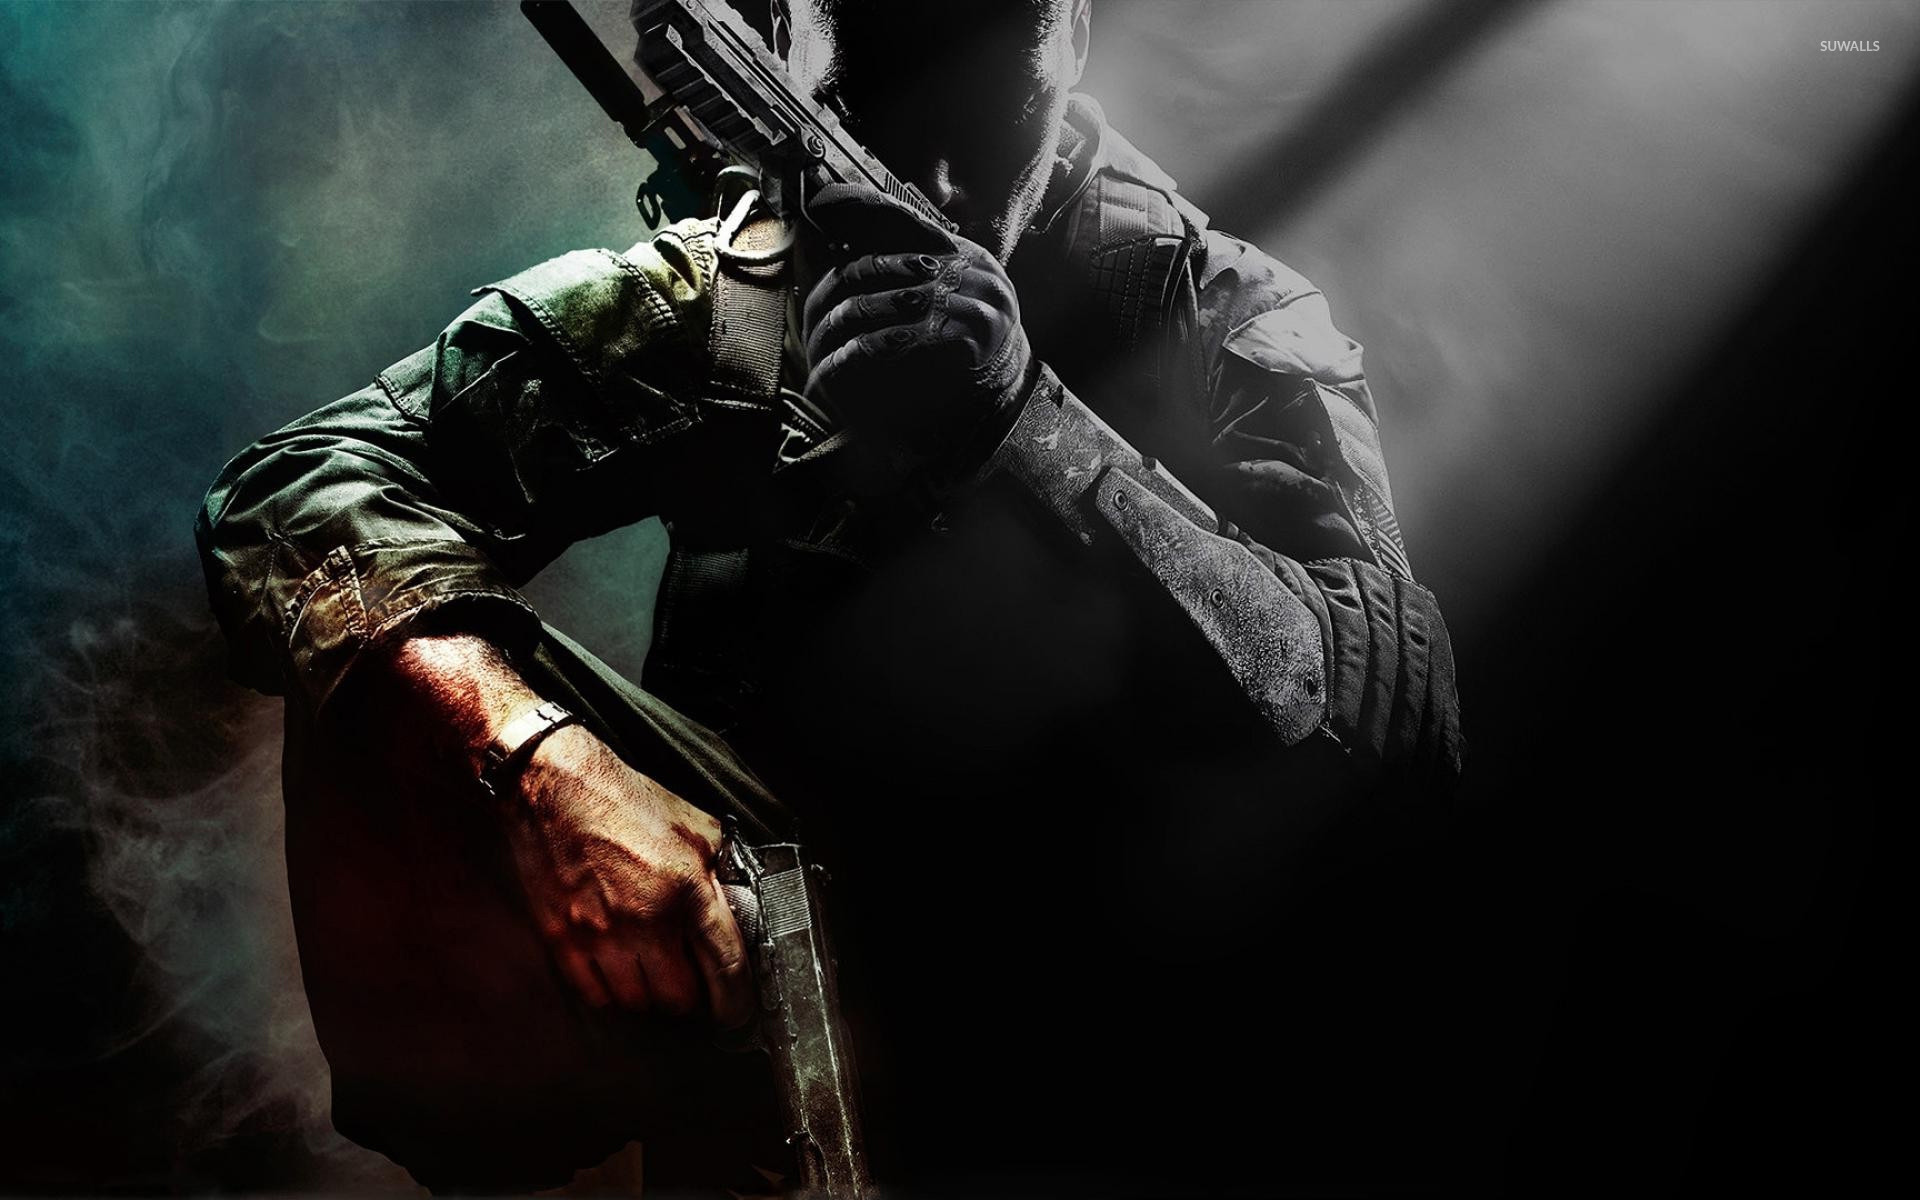 Call Of Duty Black Ops Ii Wallpaper Game Wallpapers 15931